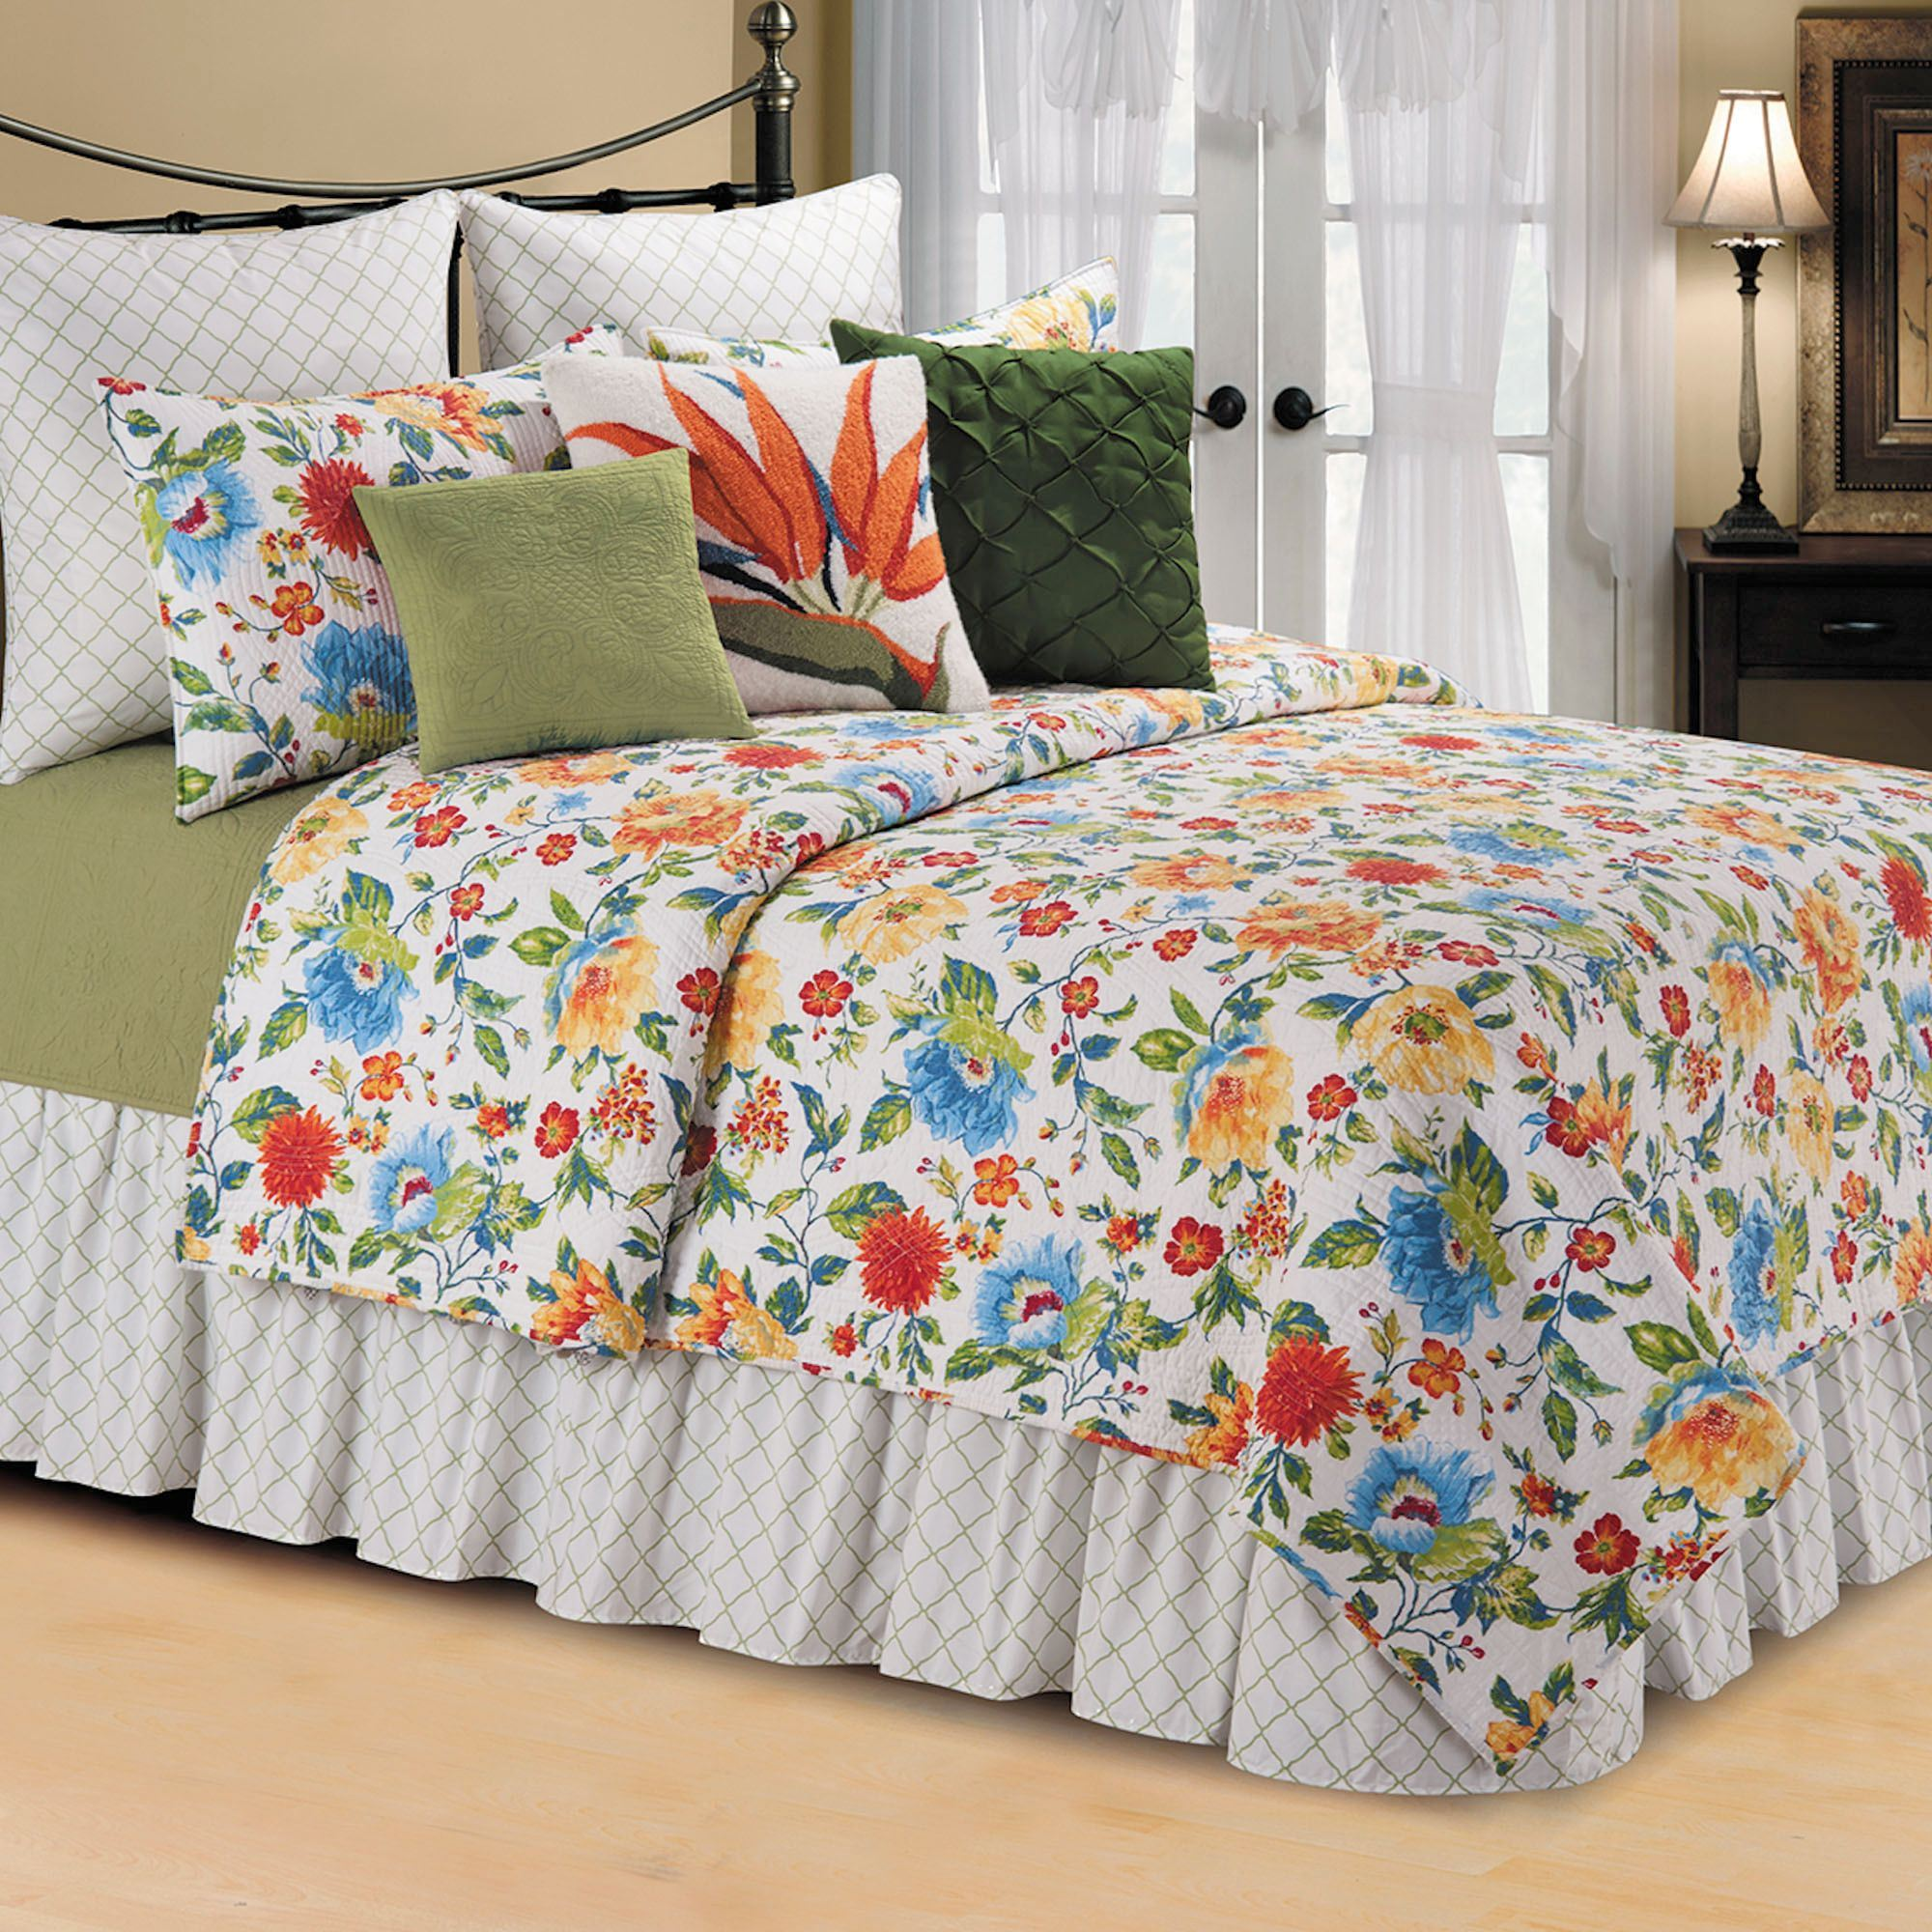 Sabrina Multicolored Floral Quilt Bedding : bedding quilts - Adamdwight.com